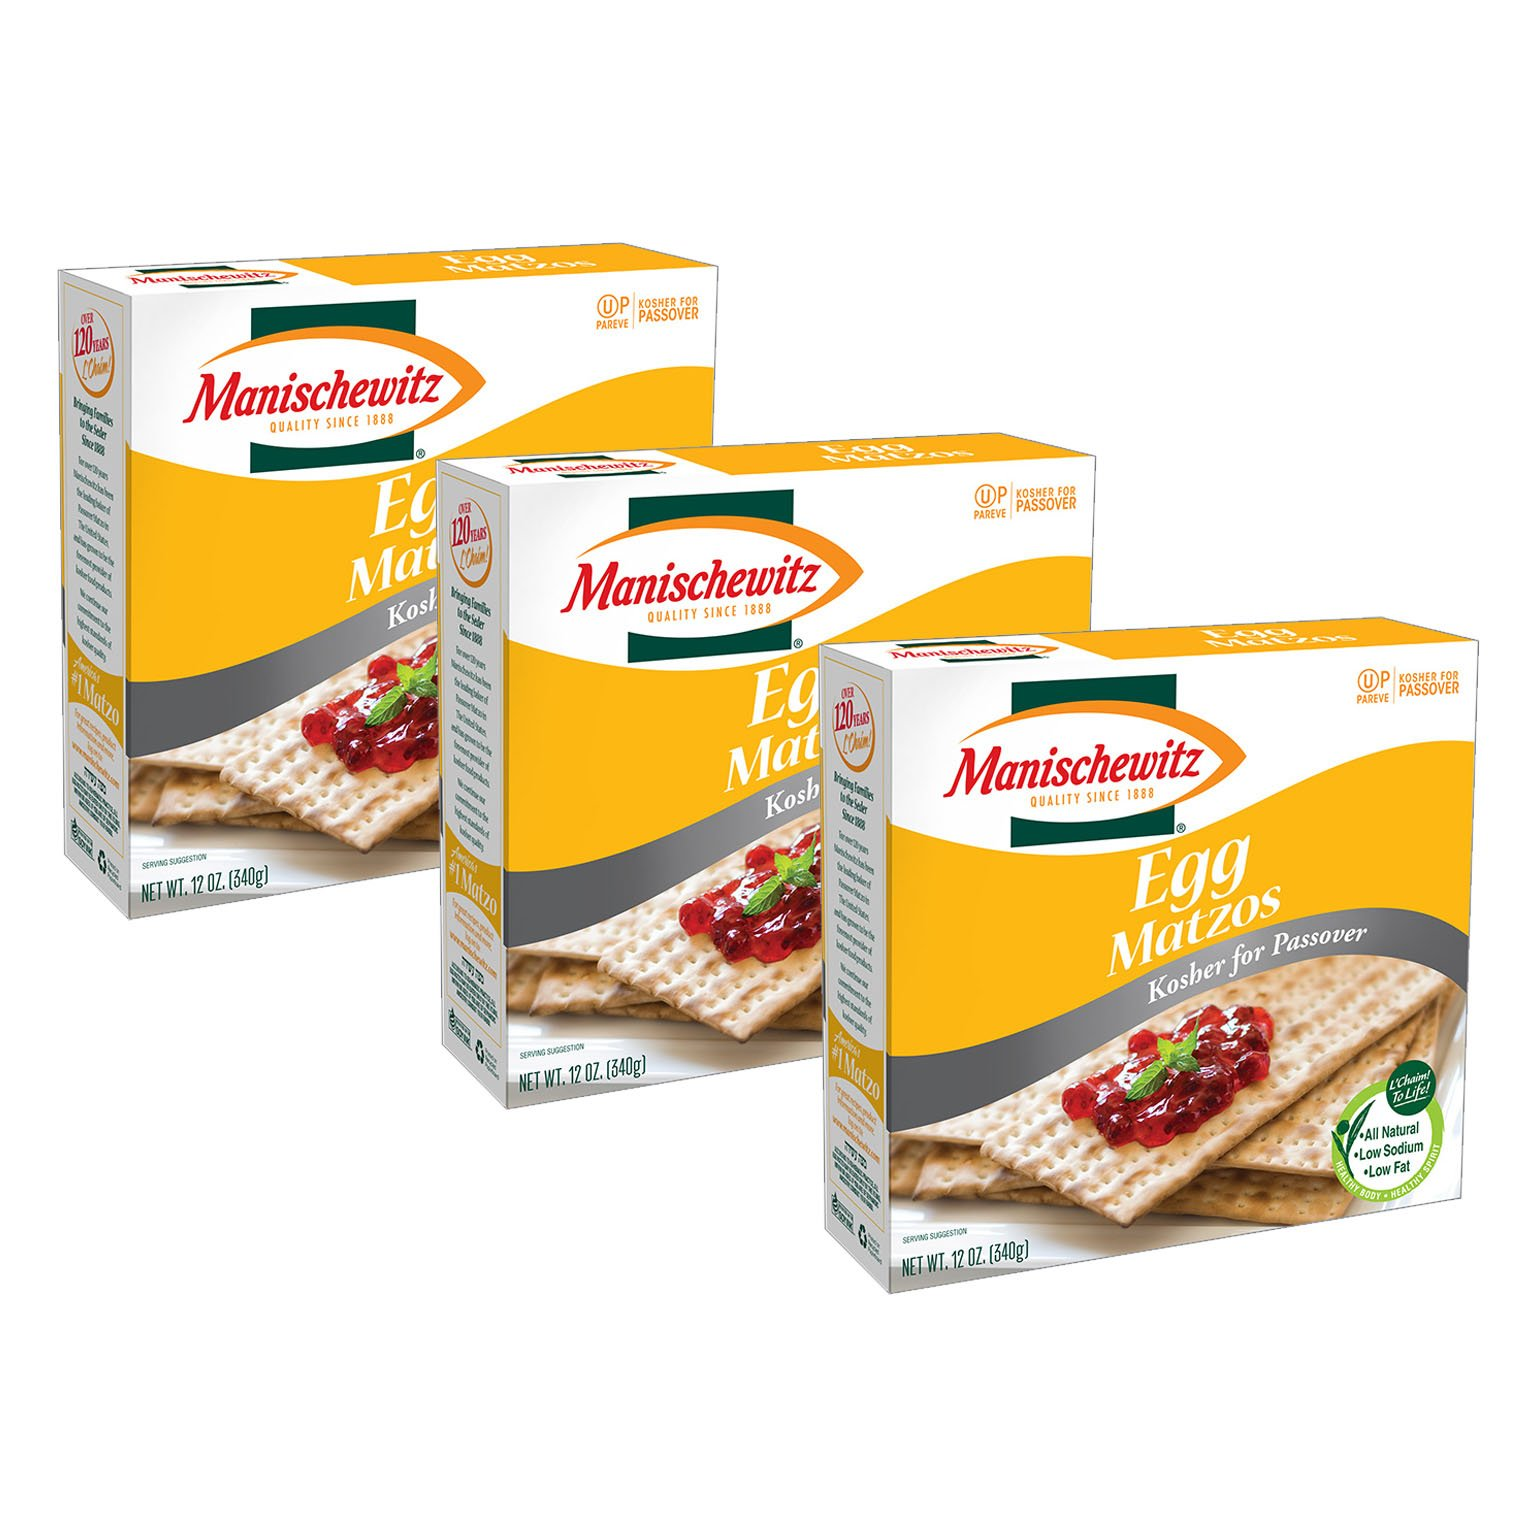 Manischewitz Egg Matzos Kosher for Passover All Natural Low Sodium Low Fat 12oz 3 pack